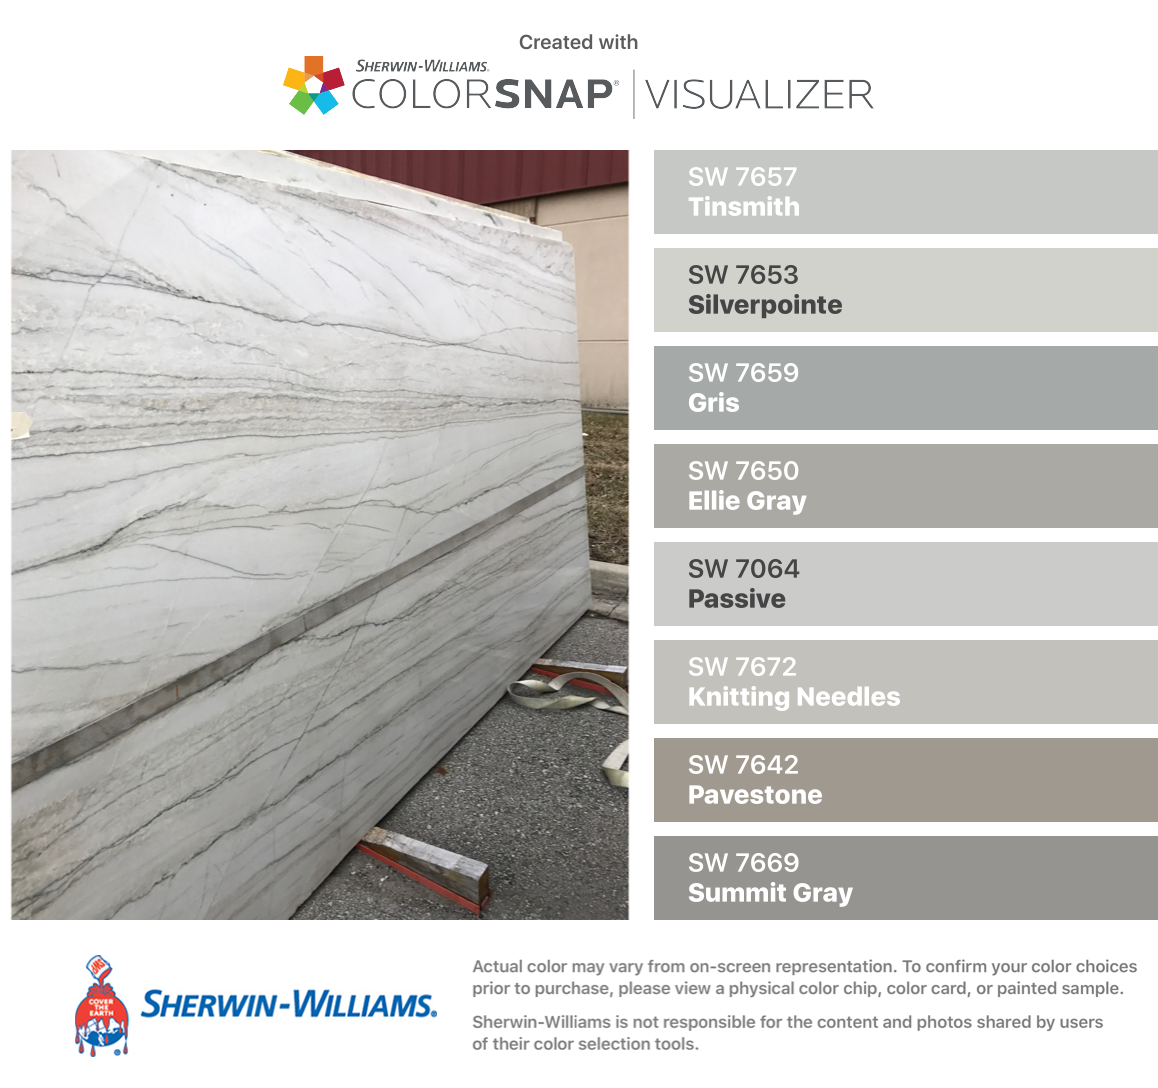 I Found These Colors With Colorsnap Visualizer For Ipho Knitting Needles Sherwin Williams Sherwin Williams Paint Colors Bathroom Paint Colors Sherwin Williams